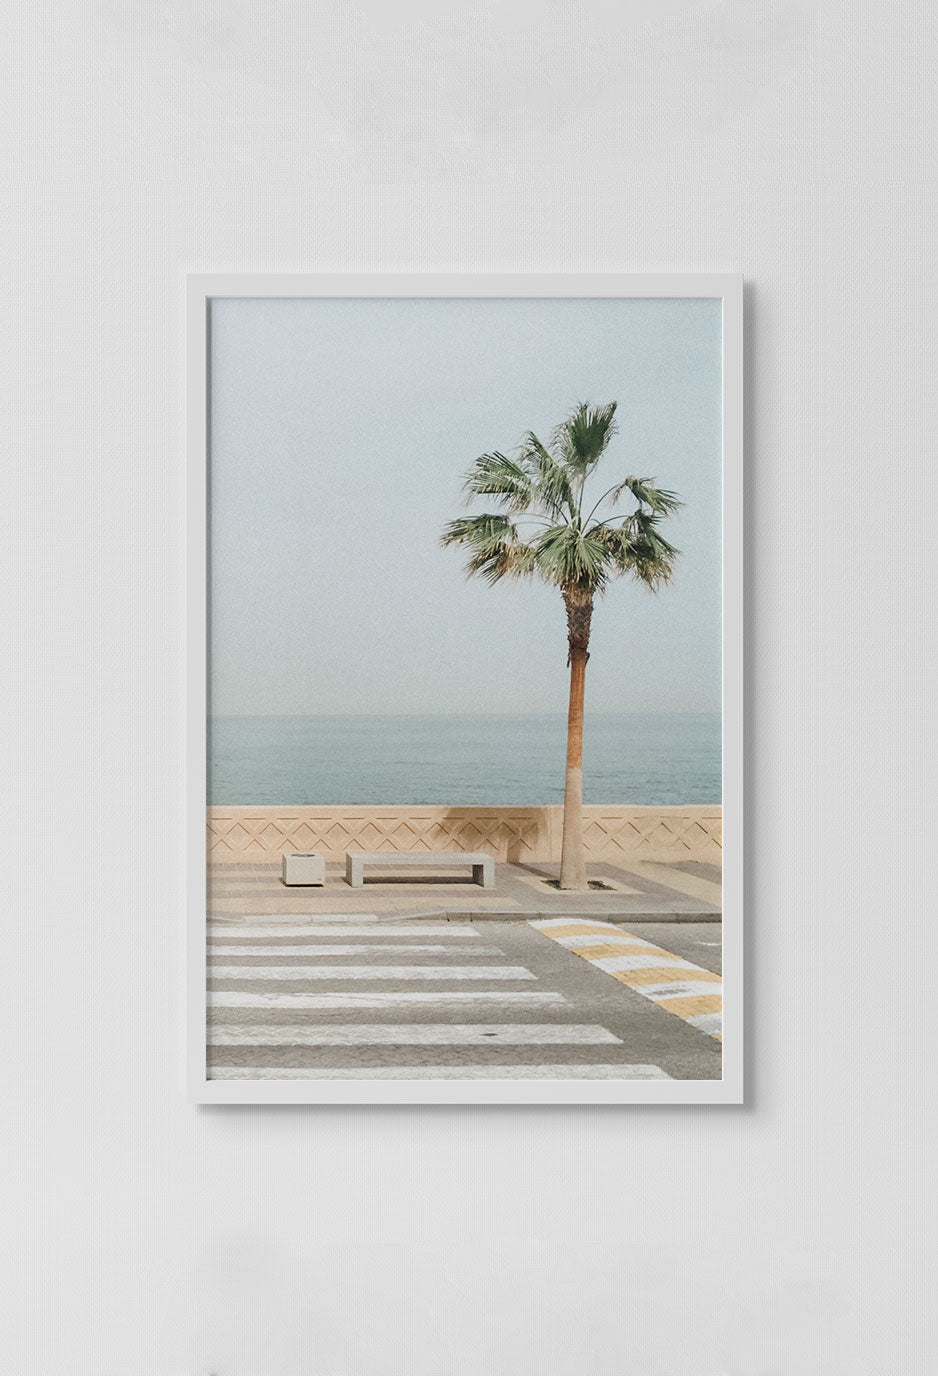 image of photo of palm tree on sidewalk and bench overlooking ocean in white frame on white wall.